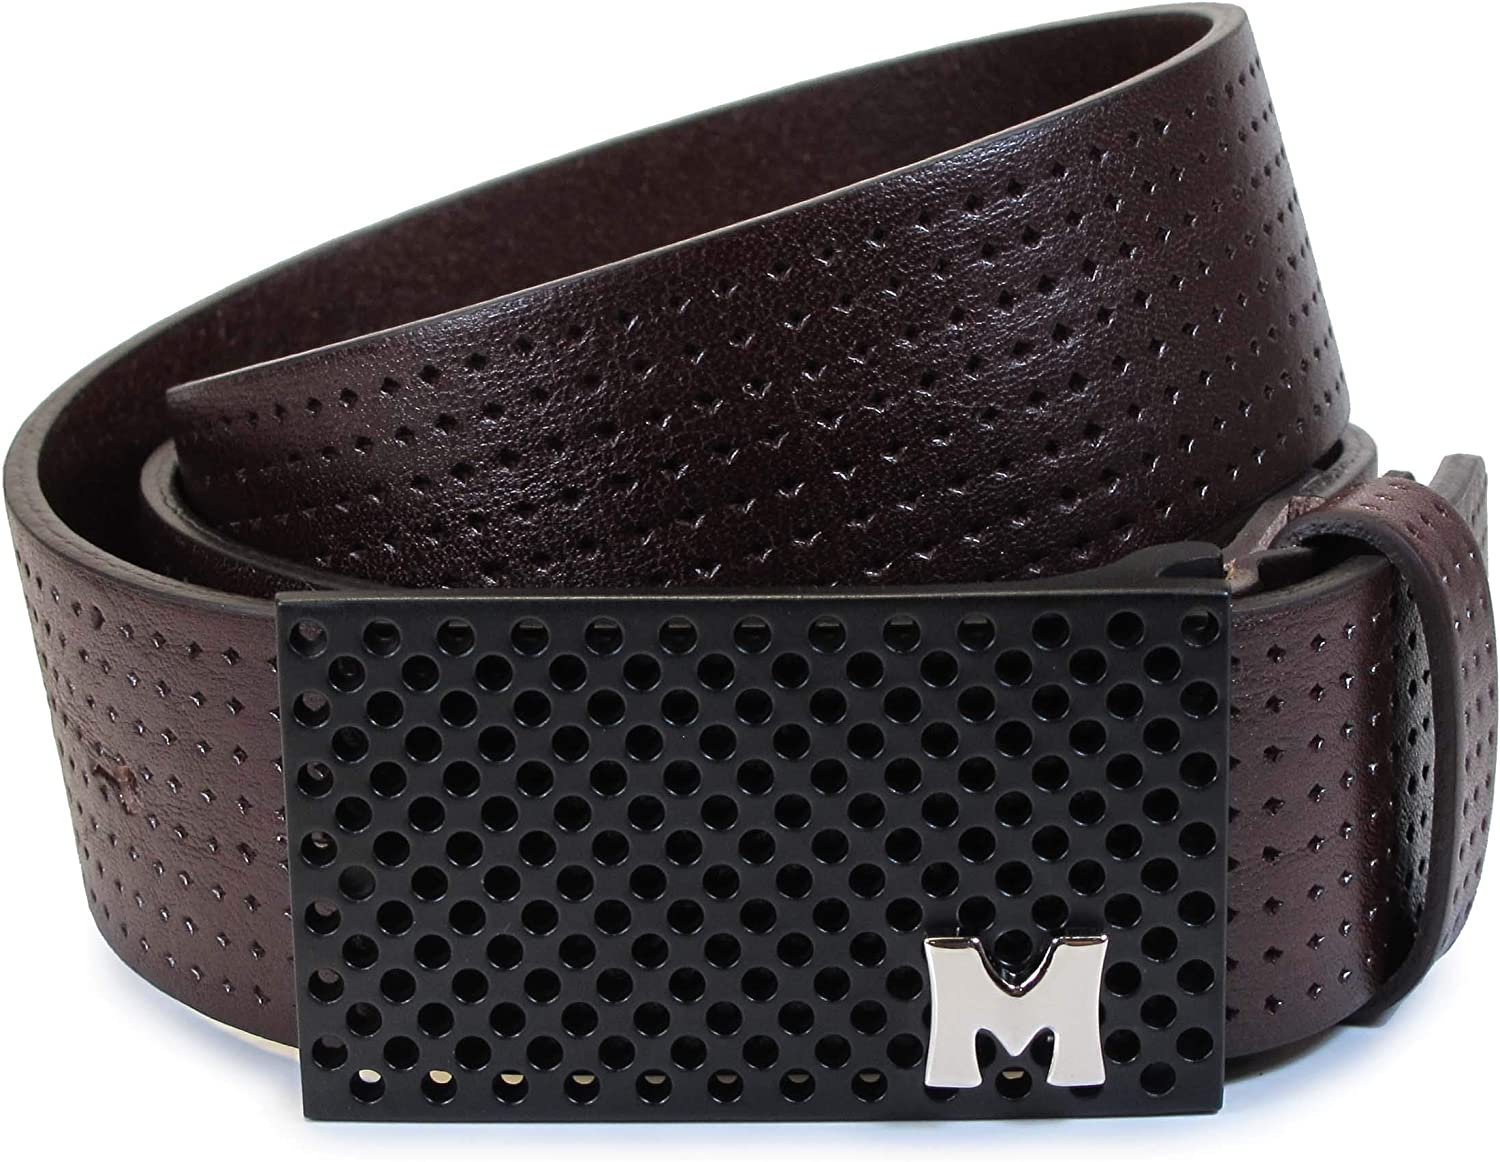 TW3 Womens Real Genuine Leather Belt Black Brown White 1.5 Wide S-L Casual Jeans